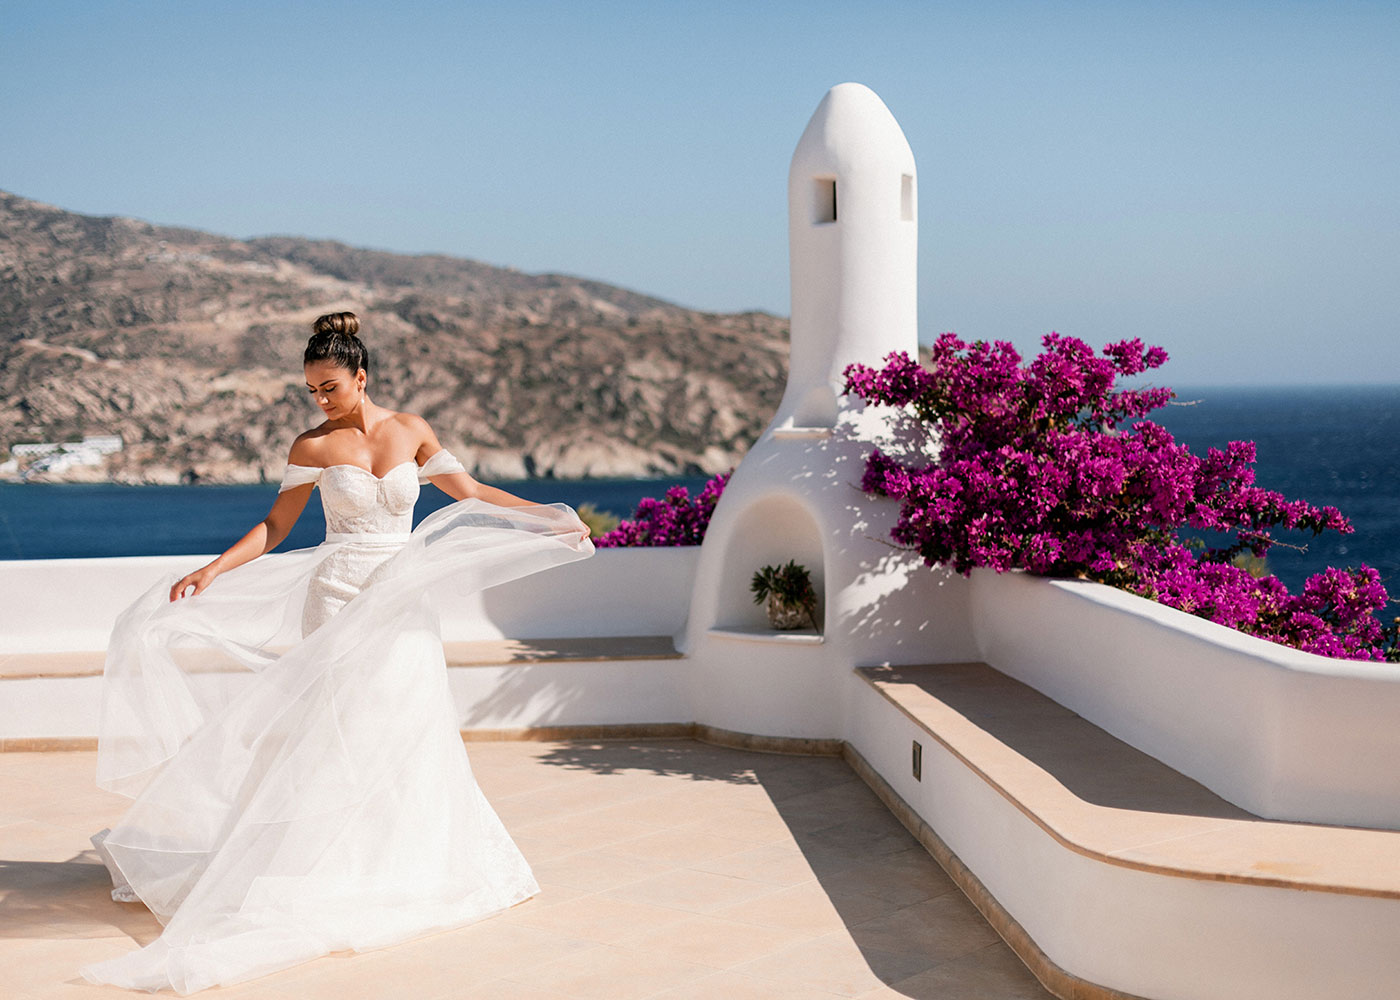 Cycladic Gem Luxury Villa Wedding Venue